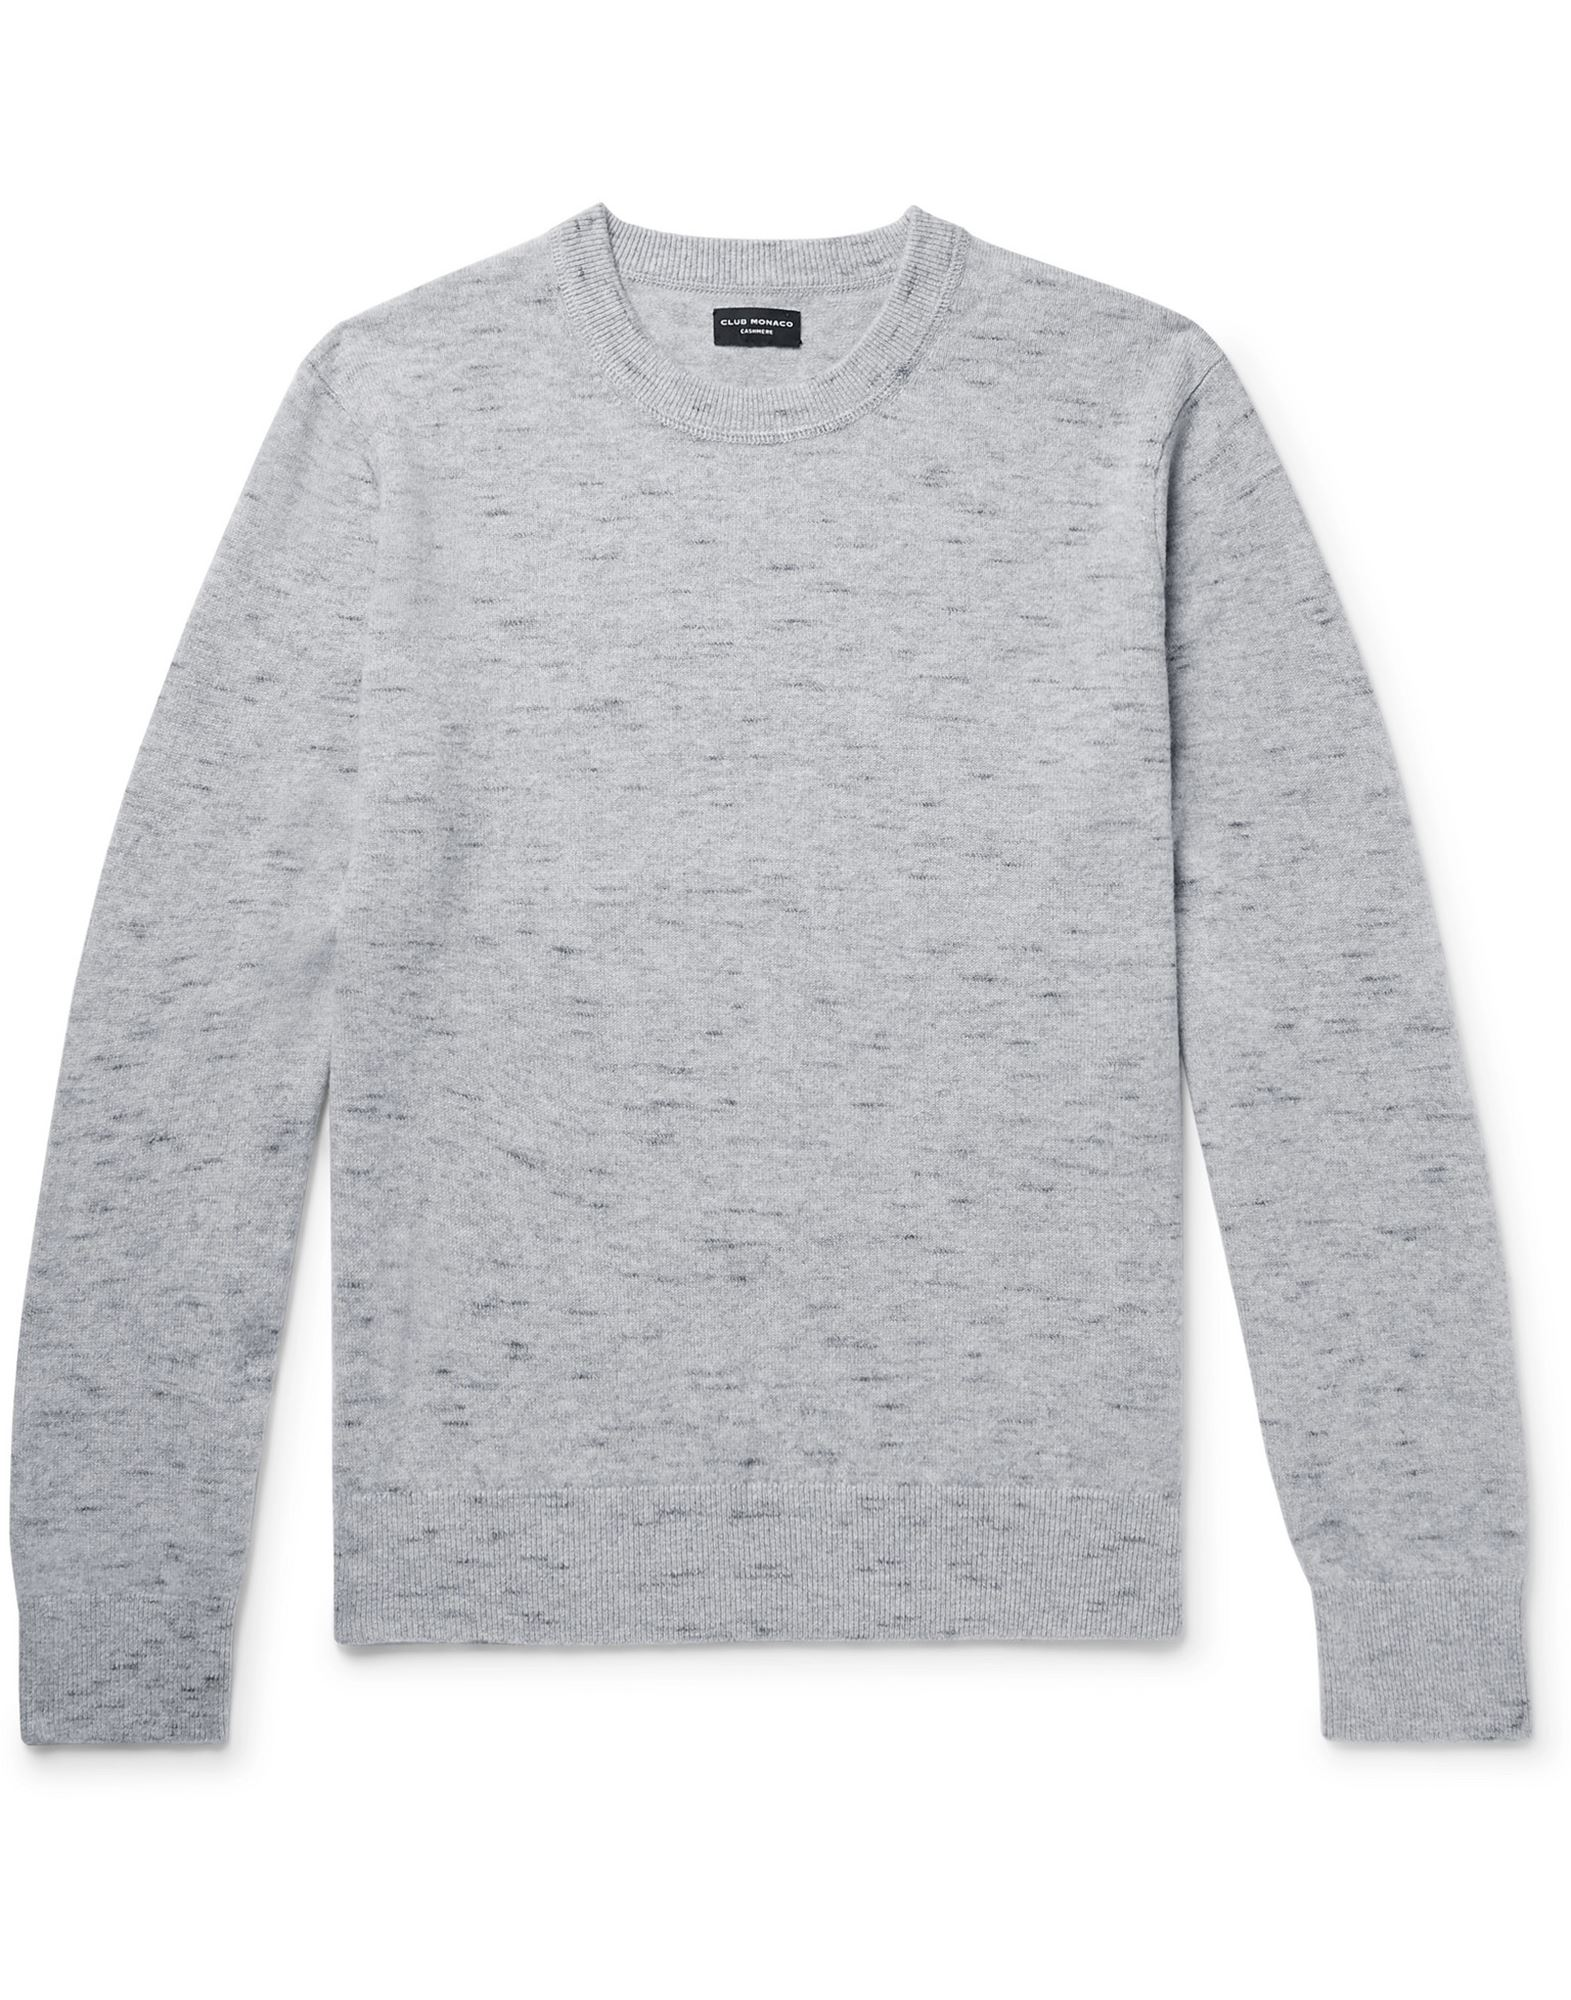 CLUB MONACO Sweaters. knitted, mélange, no appliqués, medium-weight knit, round collar, multicolor pattern, long sleeves, no pockets. 100% Cashmere